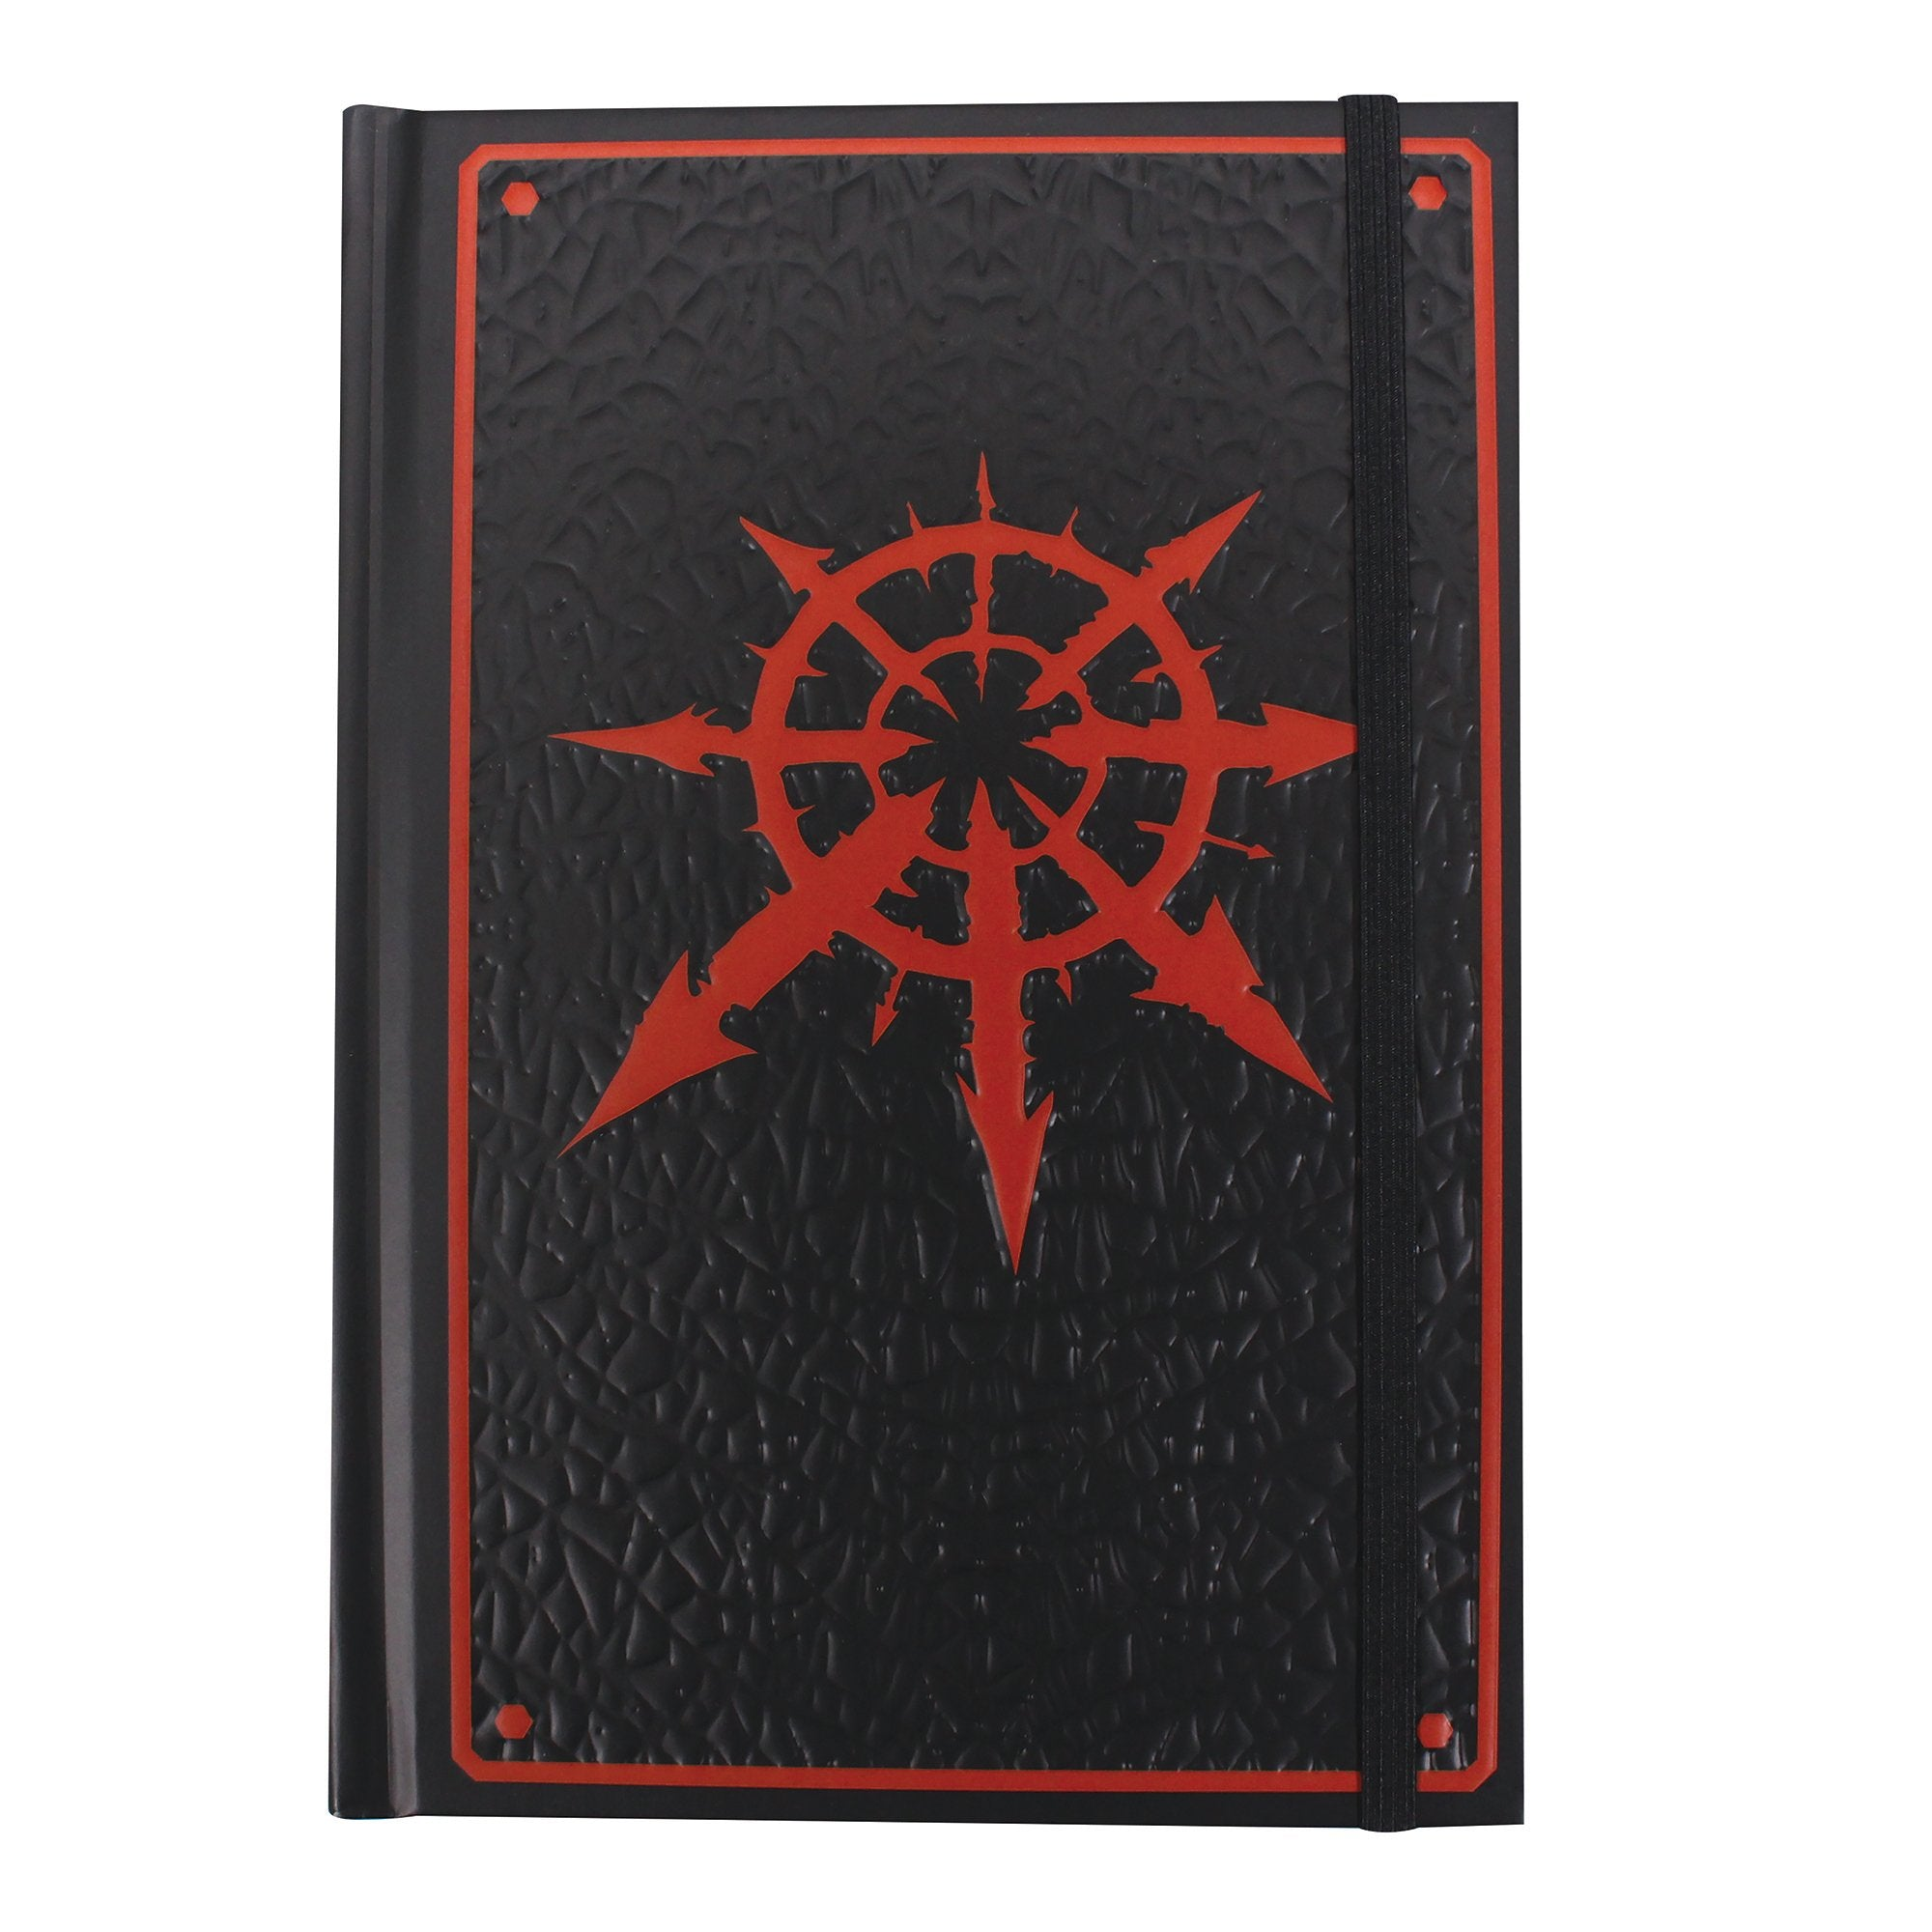 Warhammer 40,000 A5 Notebook - Chaos - Half Moon Bay US